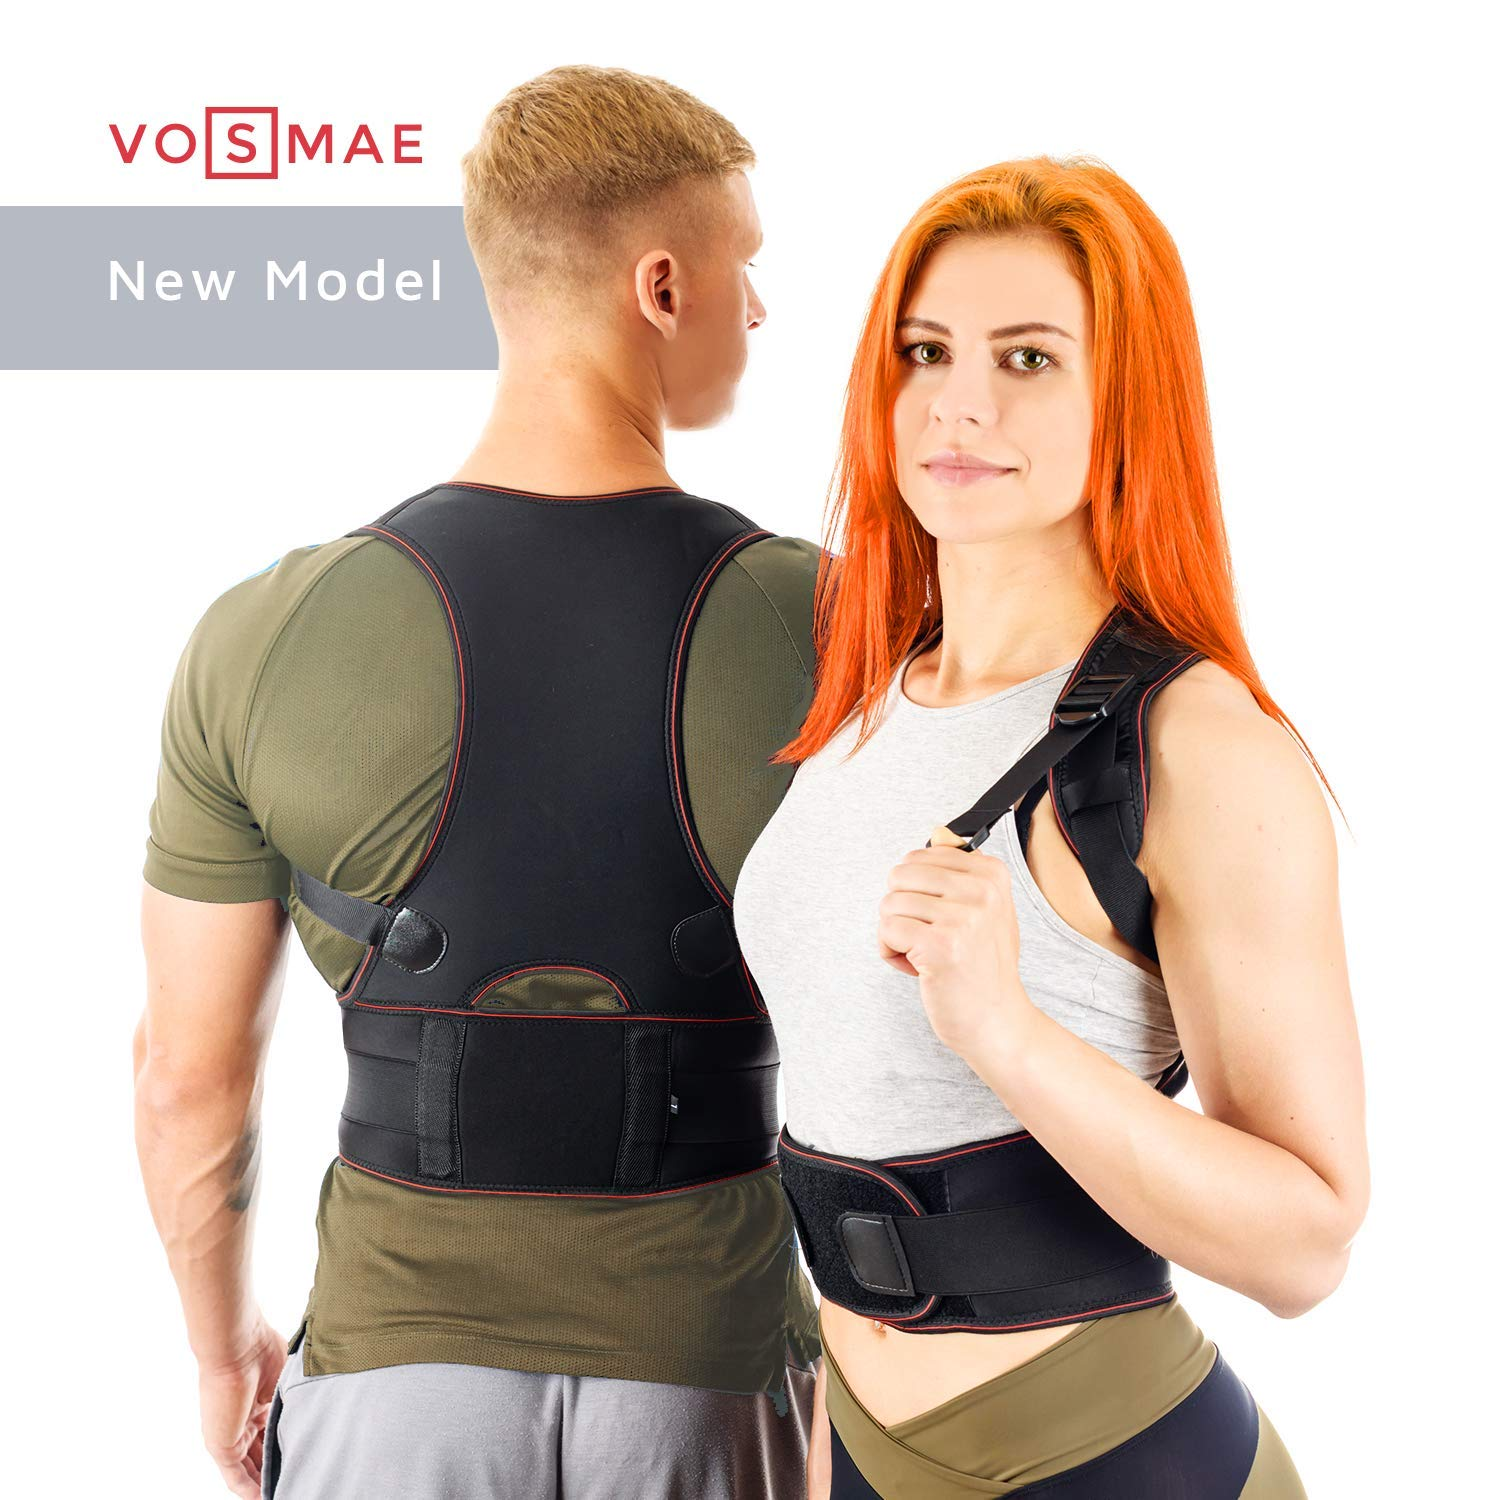 VOSMAE Posture Corrector Back Brace for Woman Men - Improve Universal Comfortable Large Fully Adjustable Spine Corrector - Clavicle Support Improve Bad Posture Shoulder Alignment and Pain Relief (L)